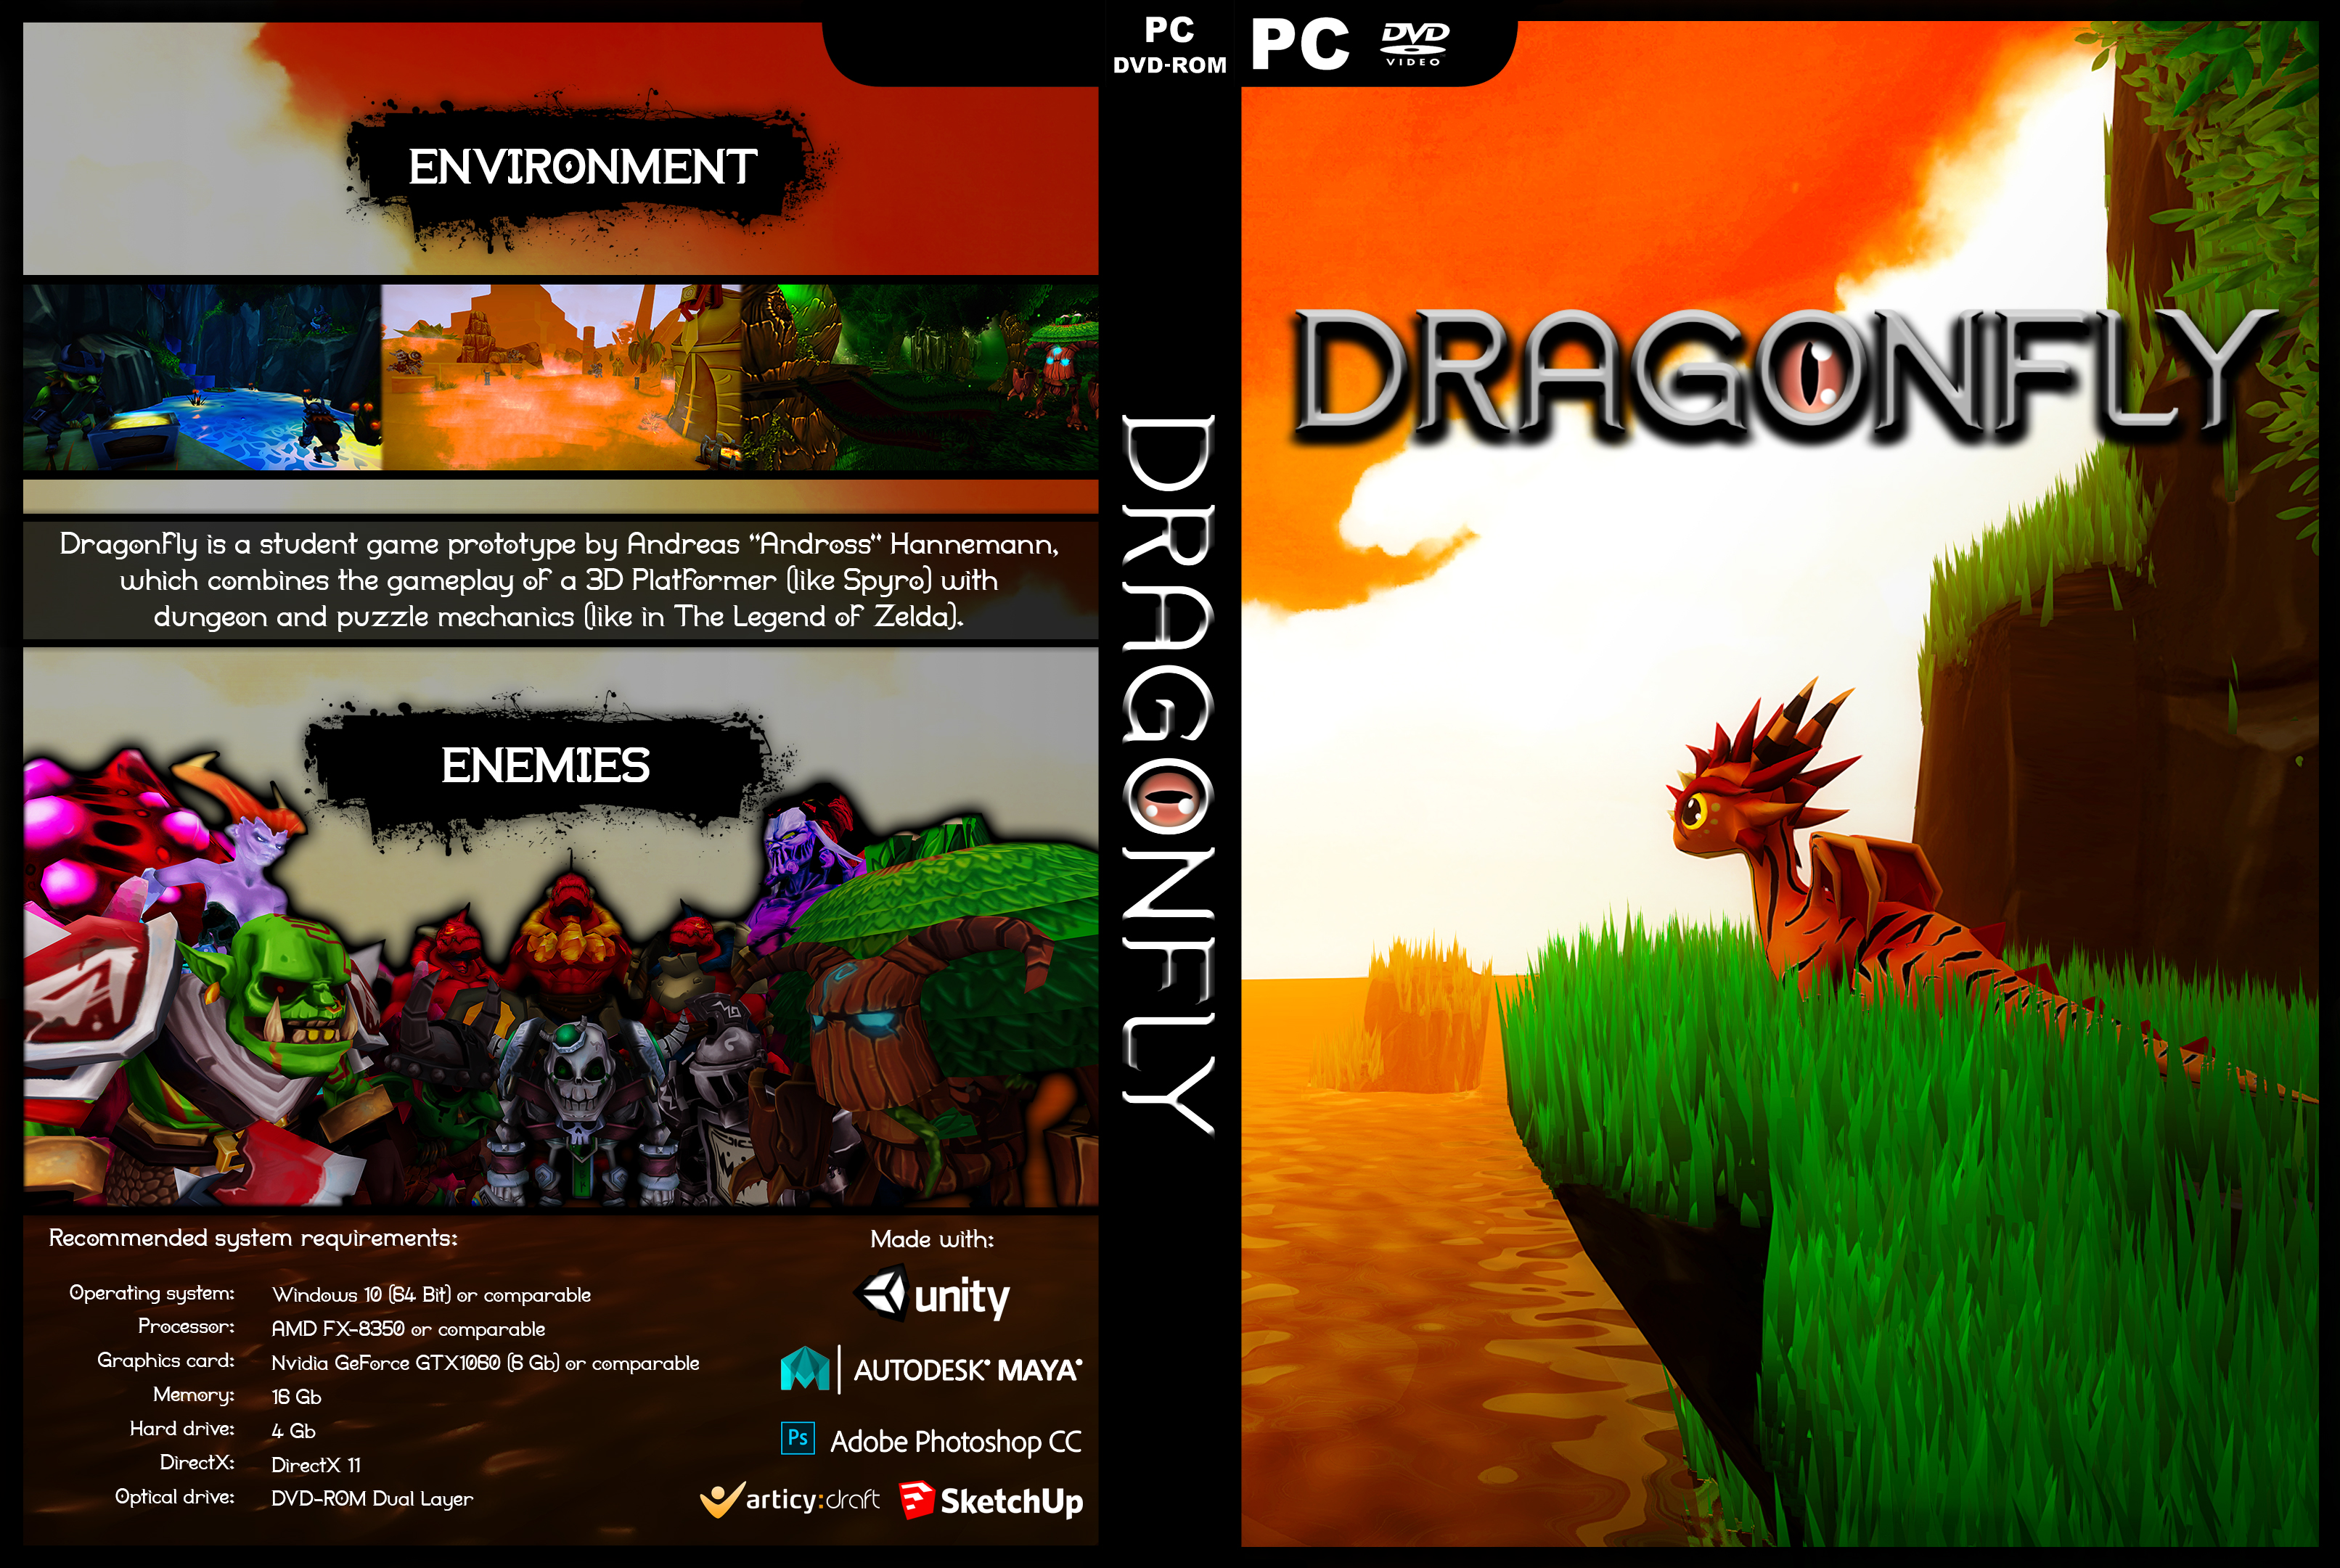 Dragonfly (Video game prototype)